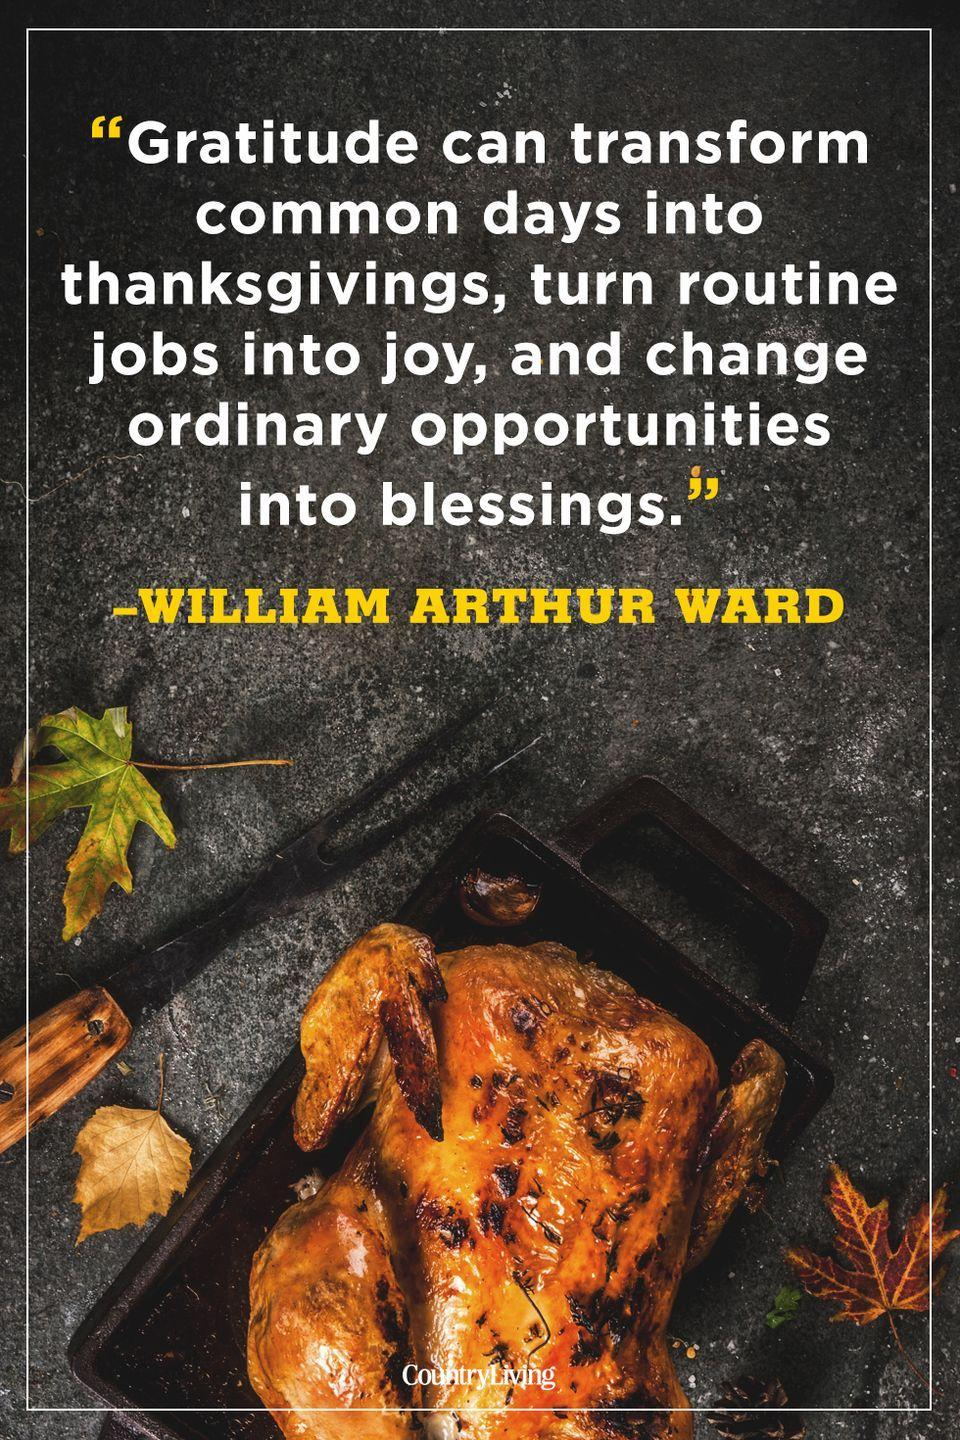 """<p>""""Gratitude can transform common days into thanksgivings, turn routine jobs into joy, and change ordinary opportunities into blessings.""""</p>"""